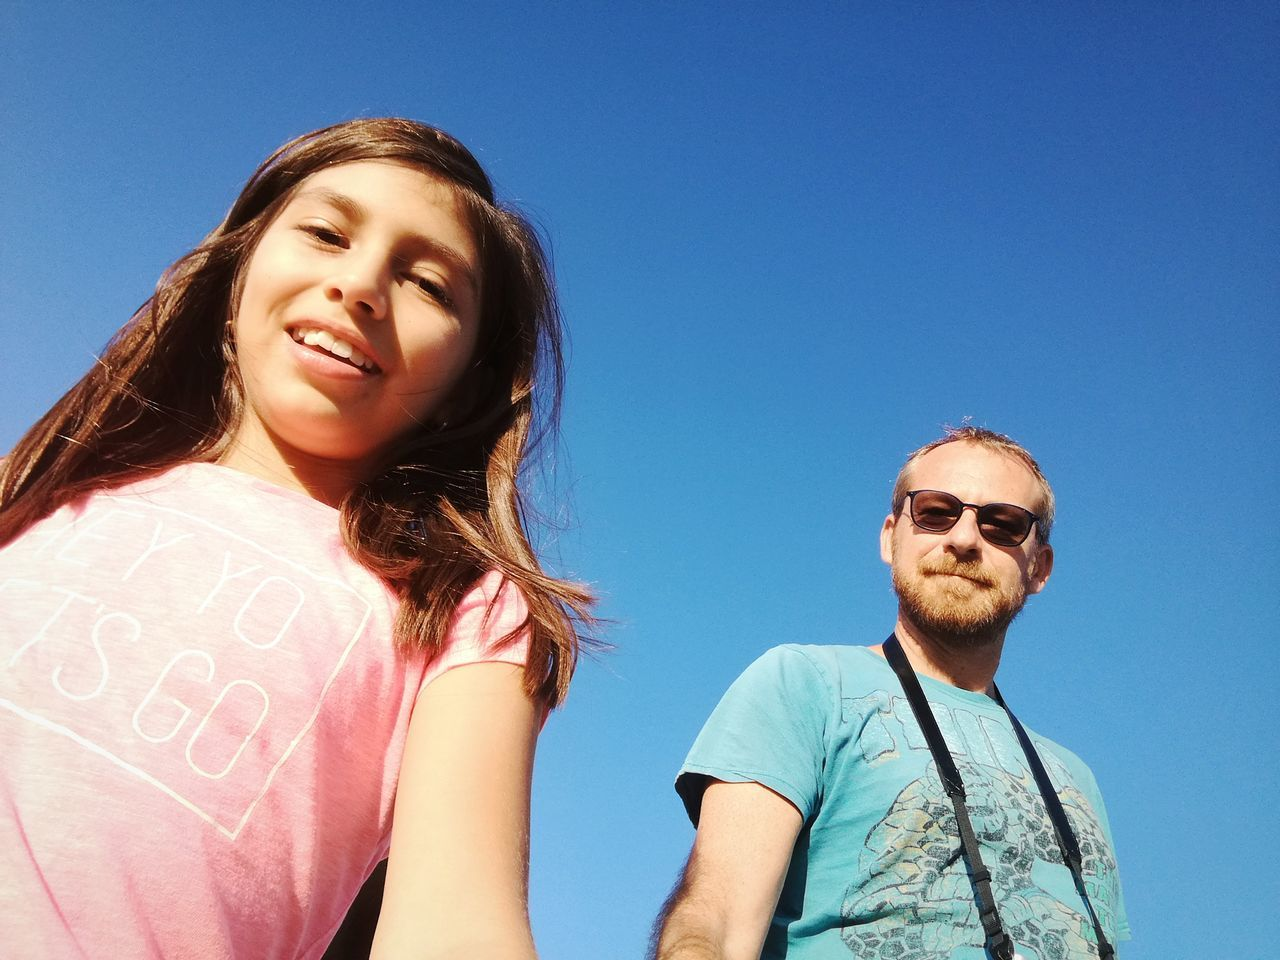 EyeEm Selects Me and Alessandra Two People Sunglasses Portrait Togetherness Happiness Looking At Camera Clear Sky Blue People Adult Smiling Young Adult Sky Day Summer Young Women Child Outdoors Friendship Real People EyeEm Best Shots Leica Huawei P9 Eye4photography  Fresh 3 Let's Go. Together.